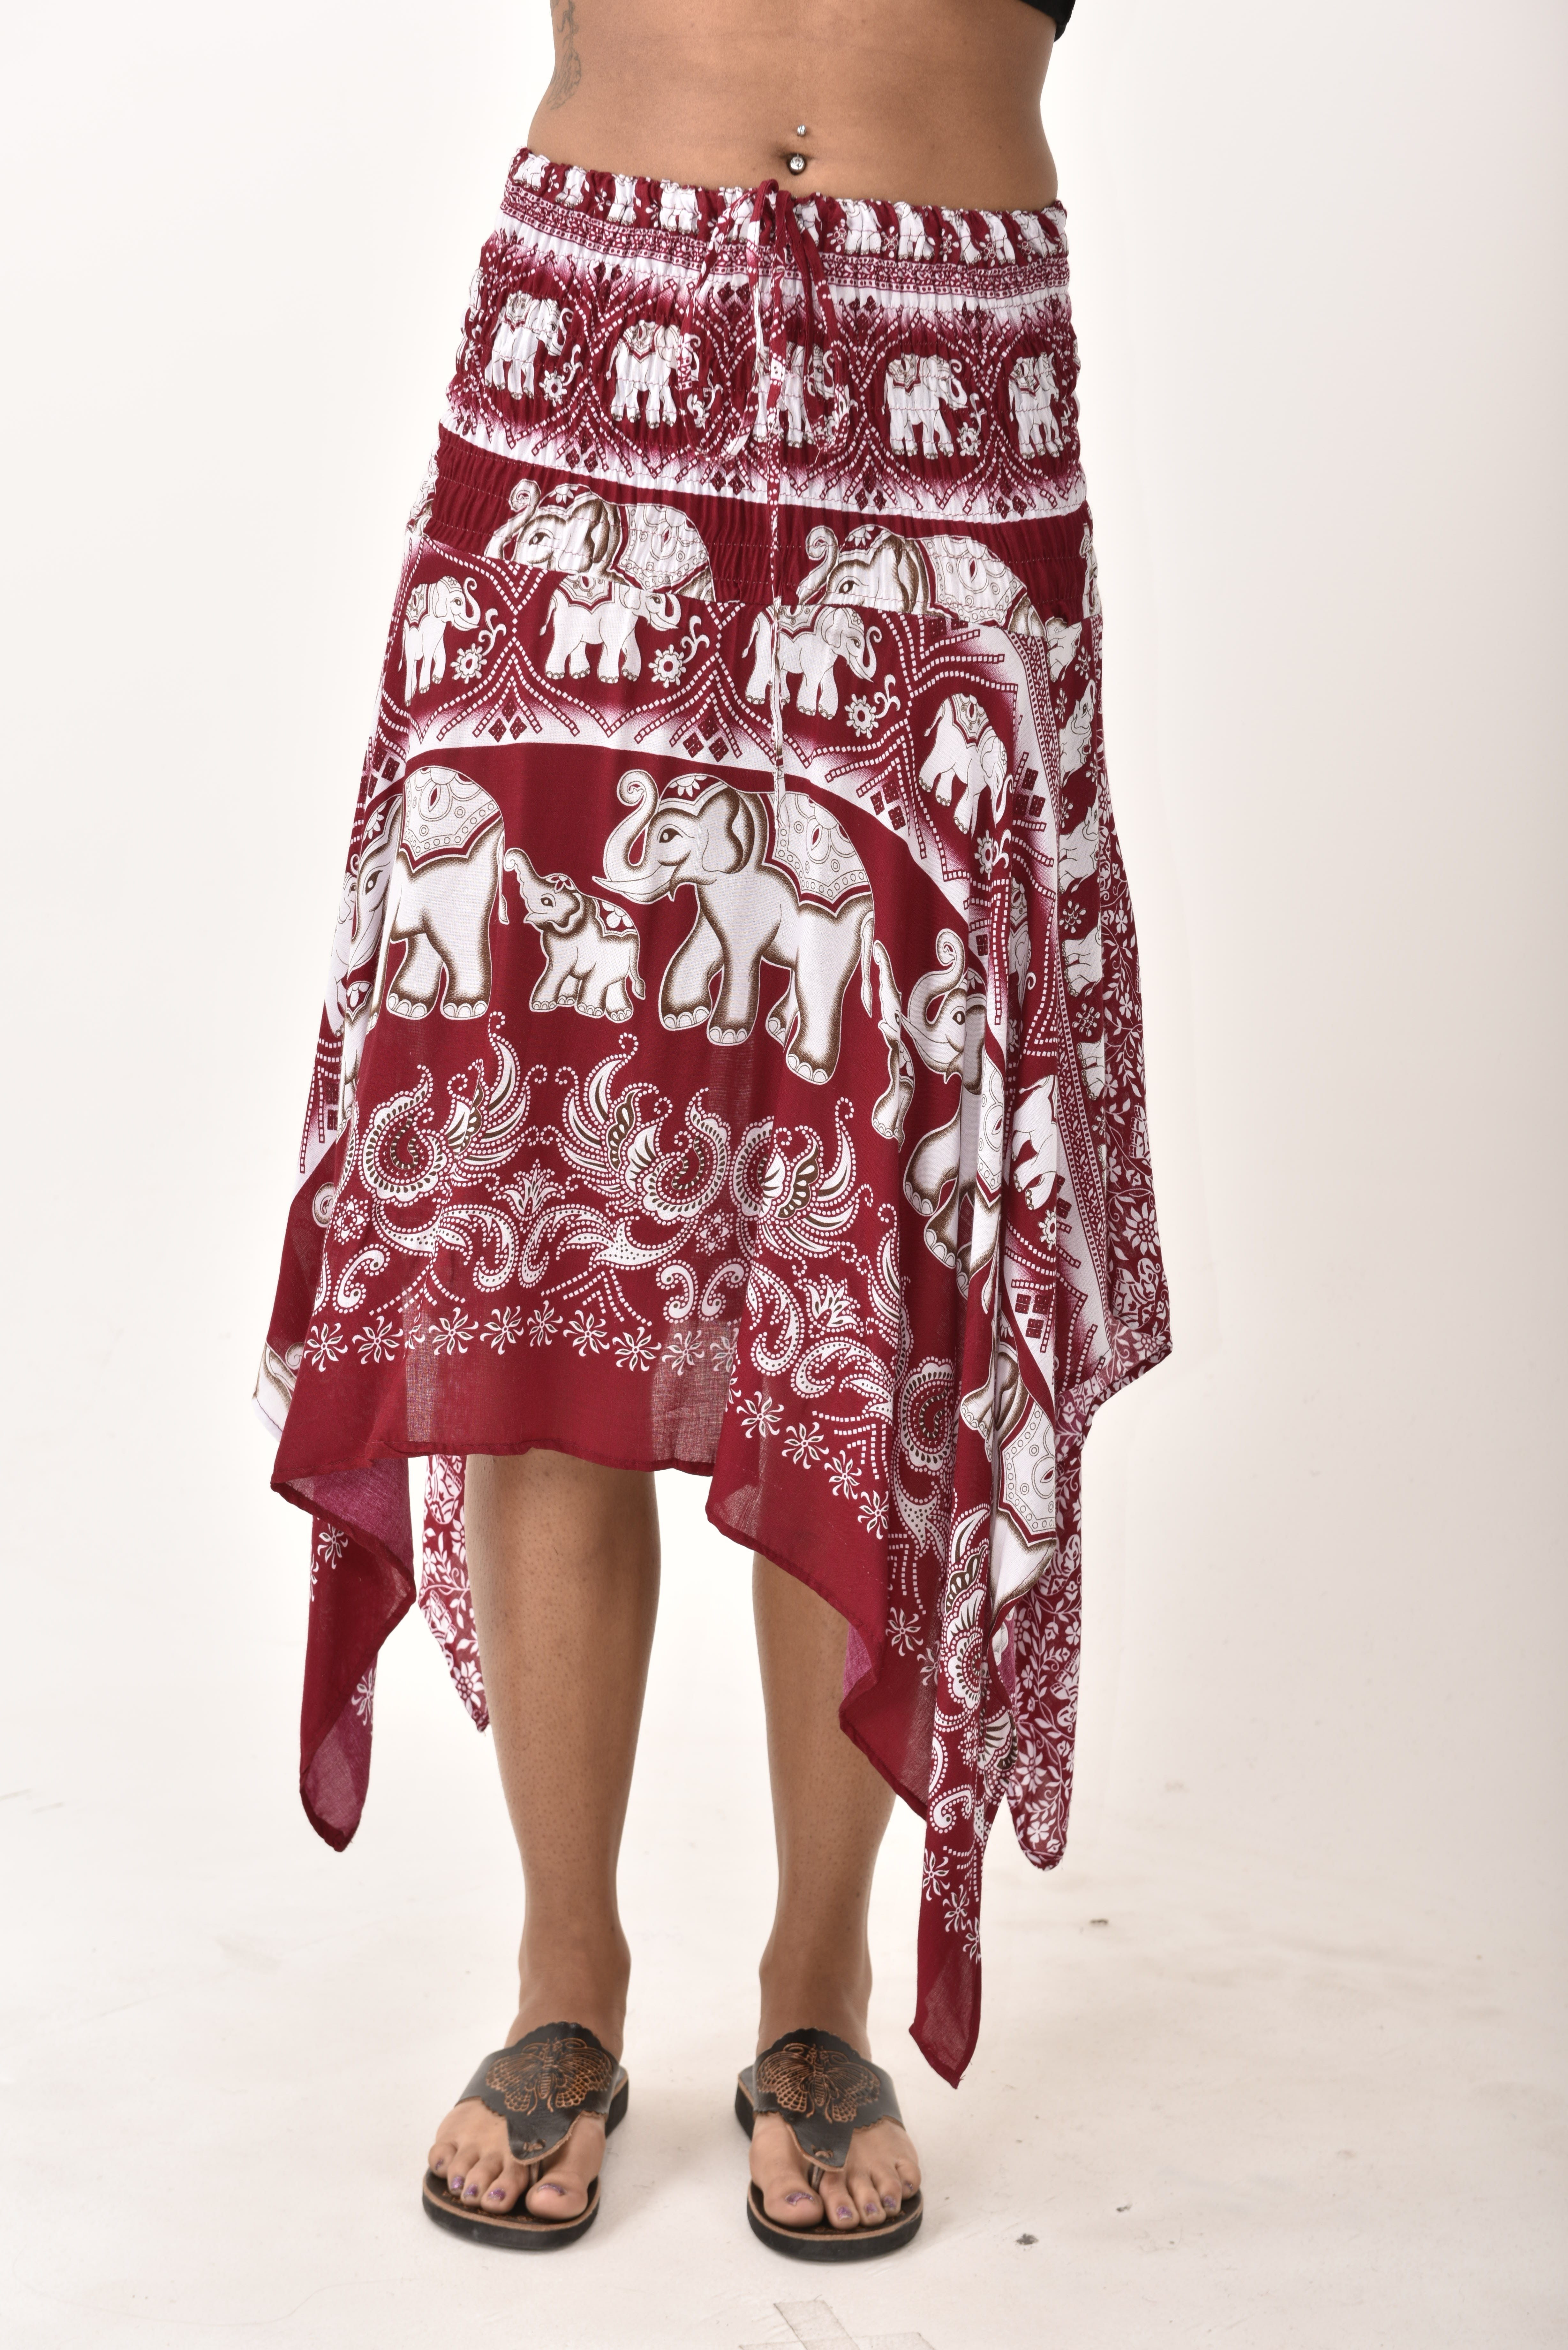 Elephant Print Fairy Dress / Skirt Red